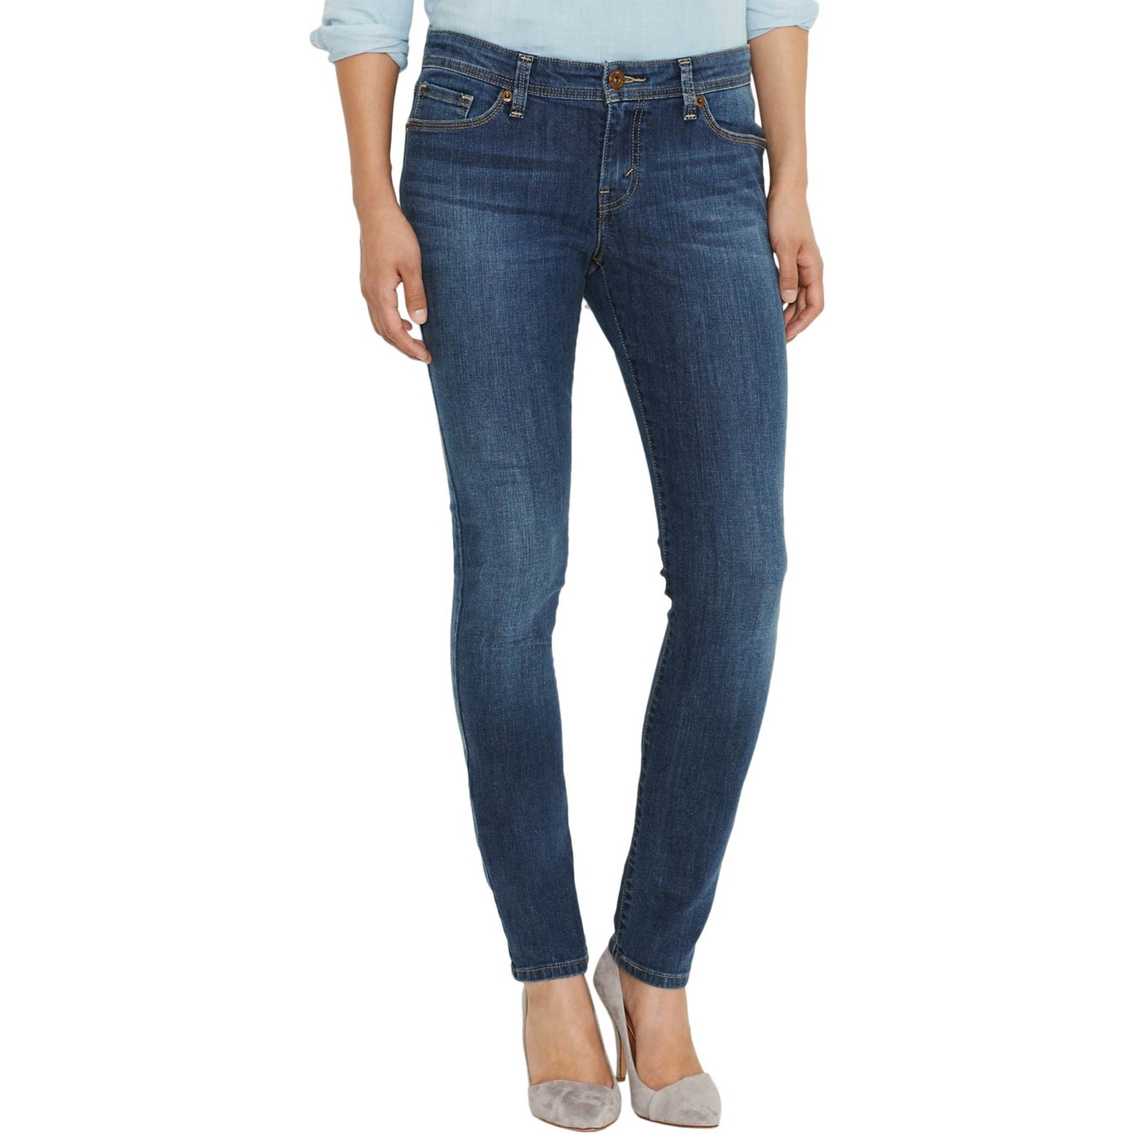 38f41ec1 Levi's 529 Curvy Skinny Jeans | Saturday - Wk 77 | Shop The Exchange